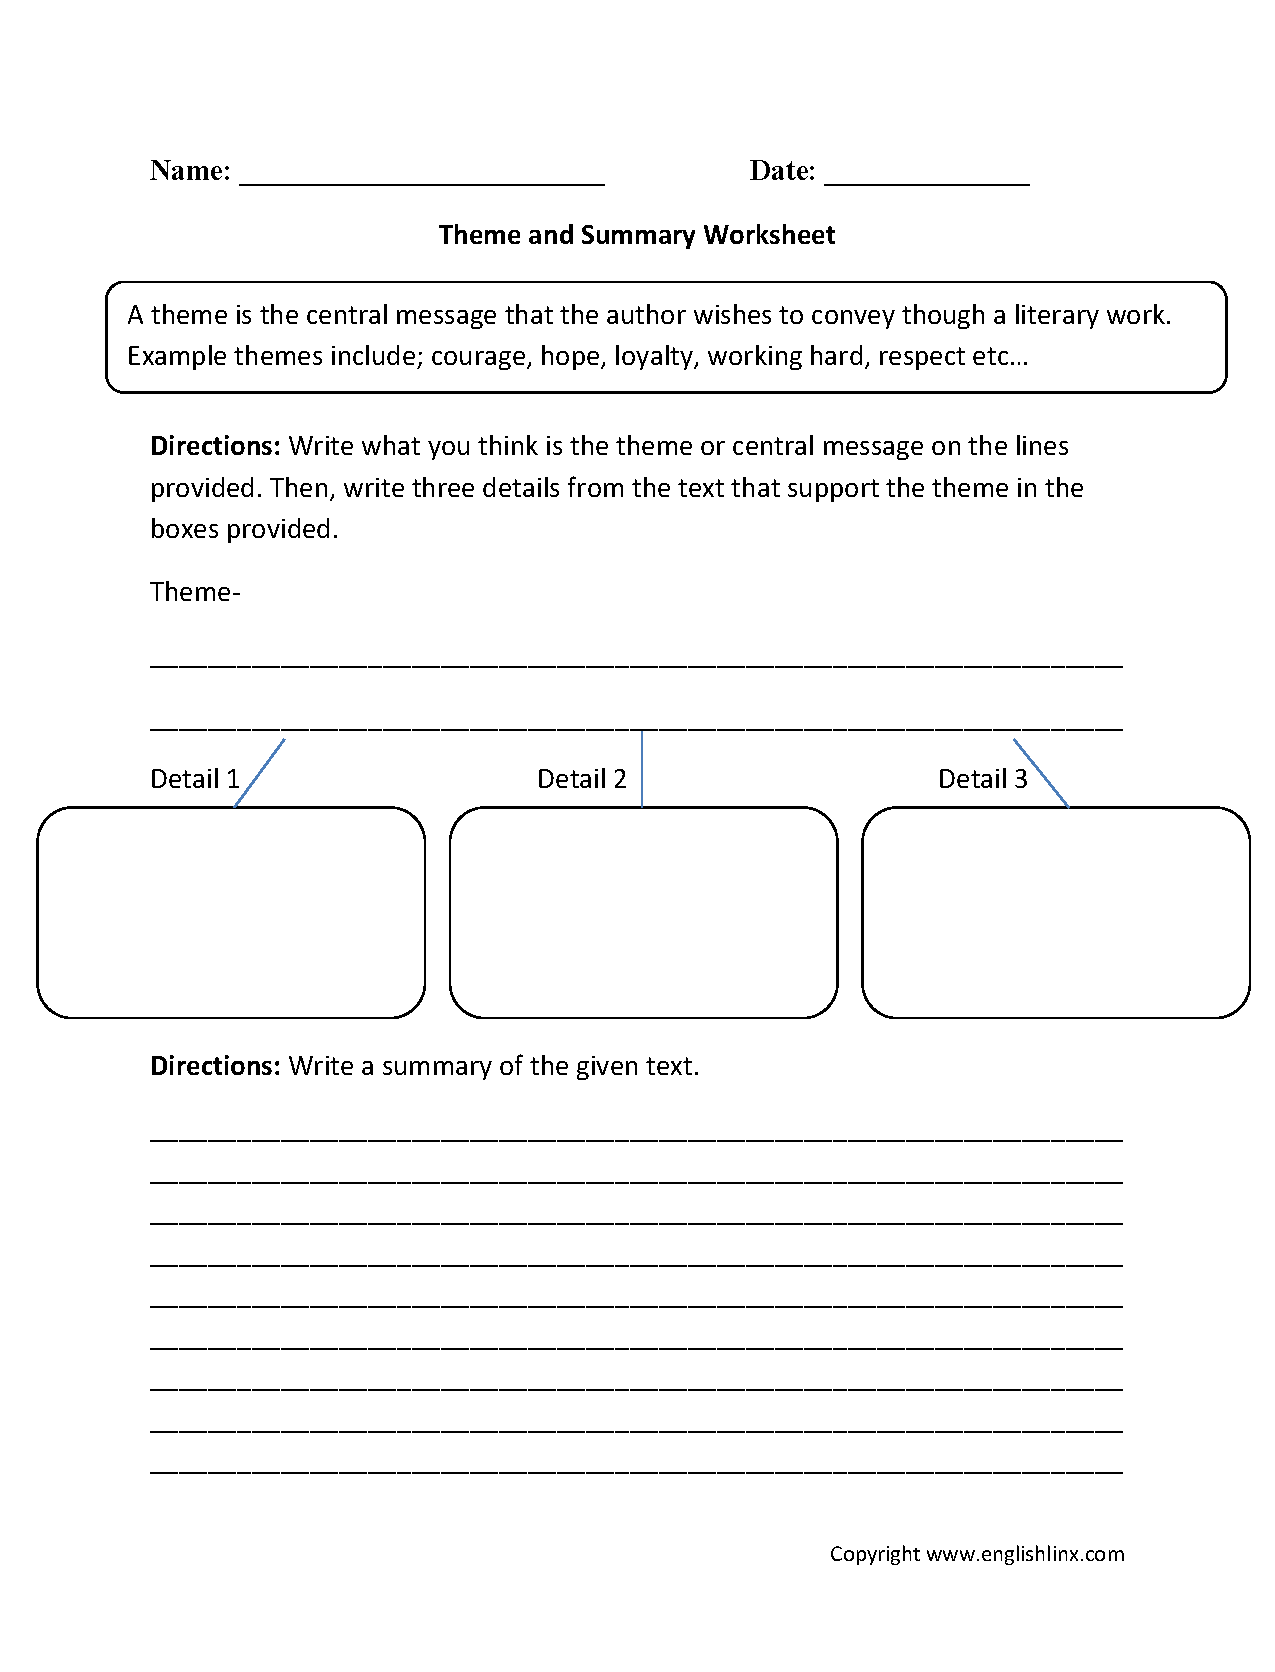 hight resolution of Theme Worksheets   School worksheets